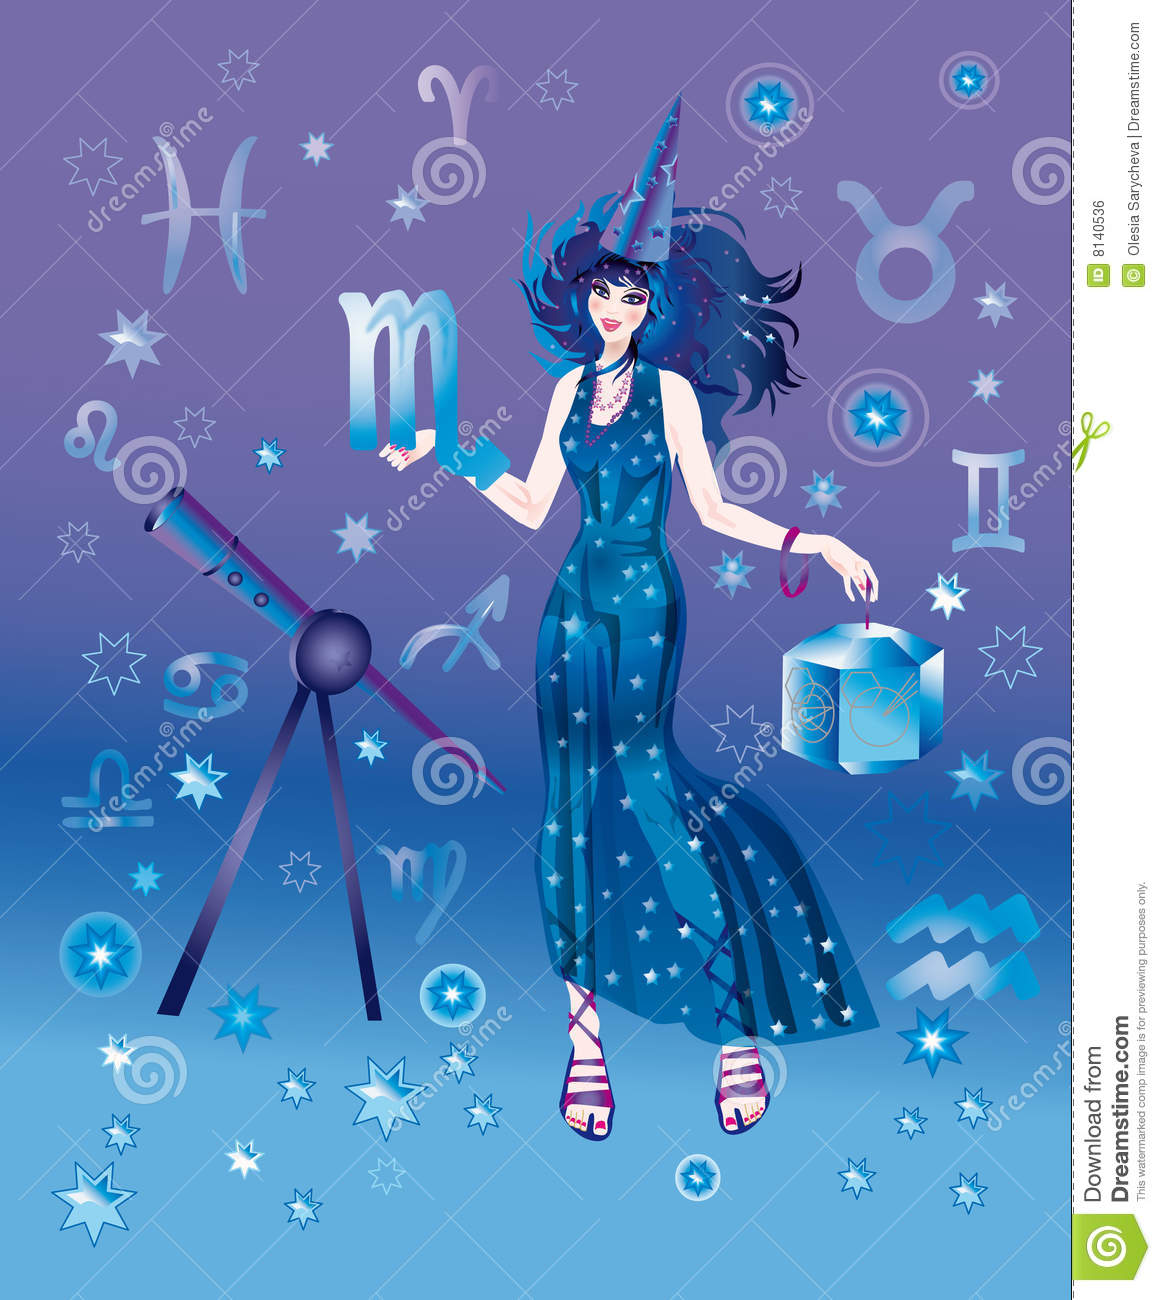 Astrologer with sign of zodiac of Scorpio